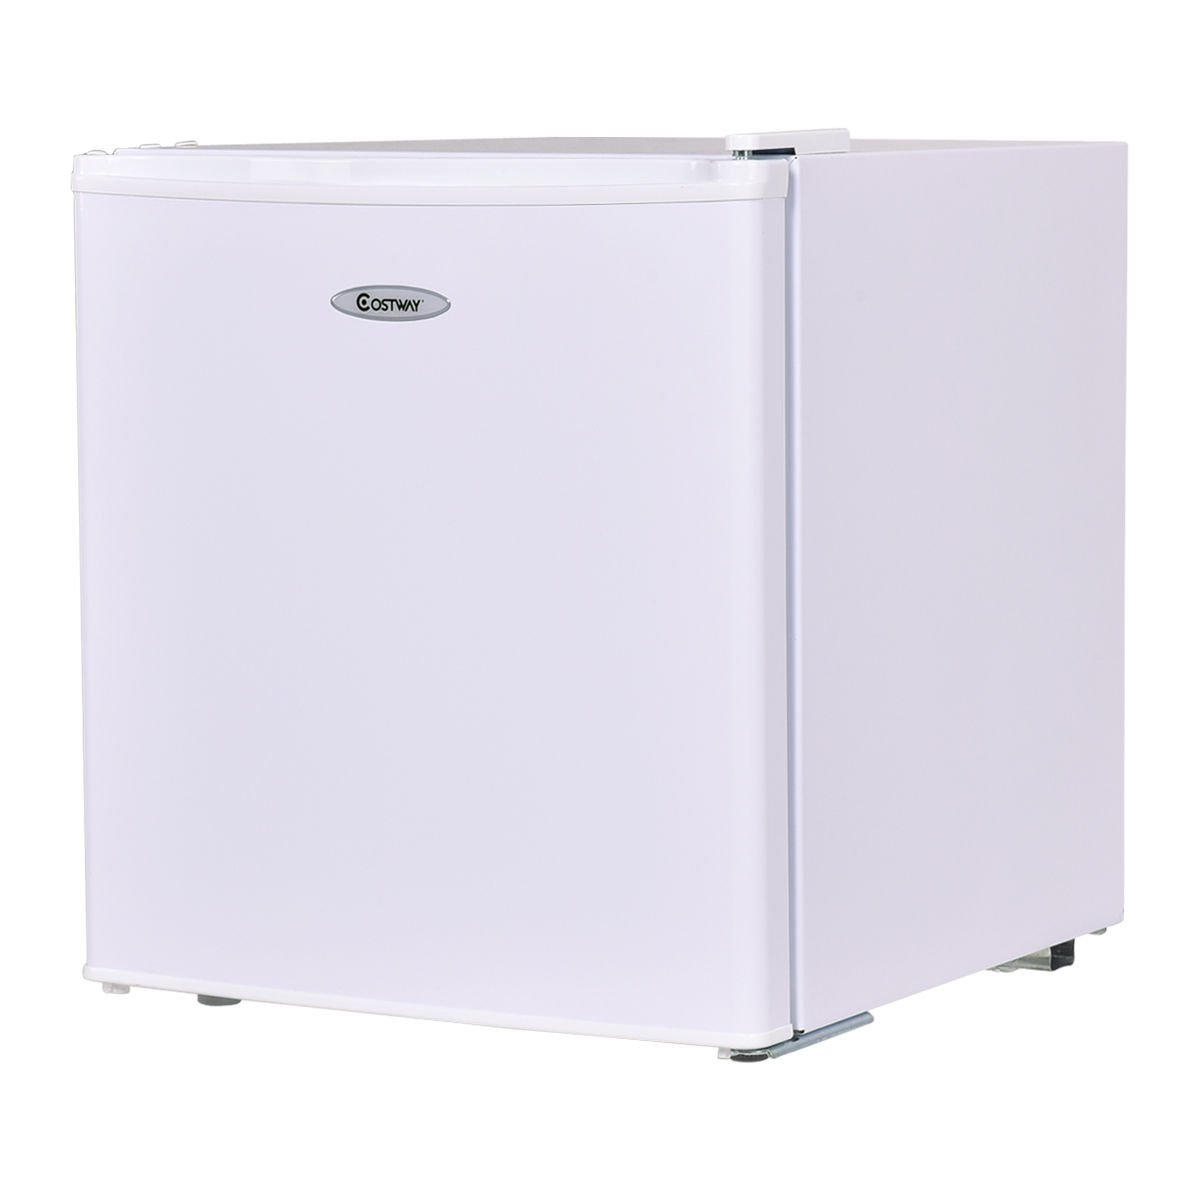 Costway Compact Refrigerator and Freezer With Single Door Cooler Fridge,1.7 Cubic Feet,Unit (White)